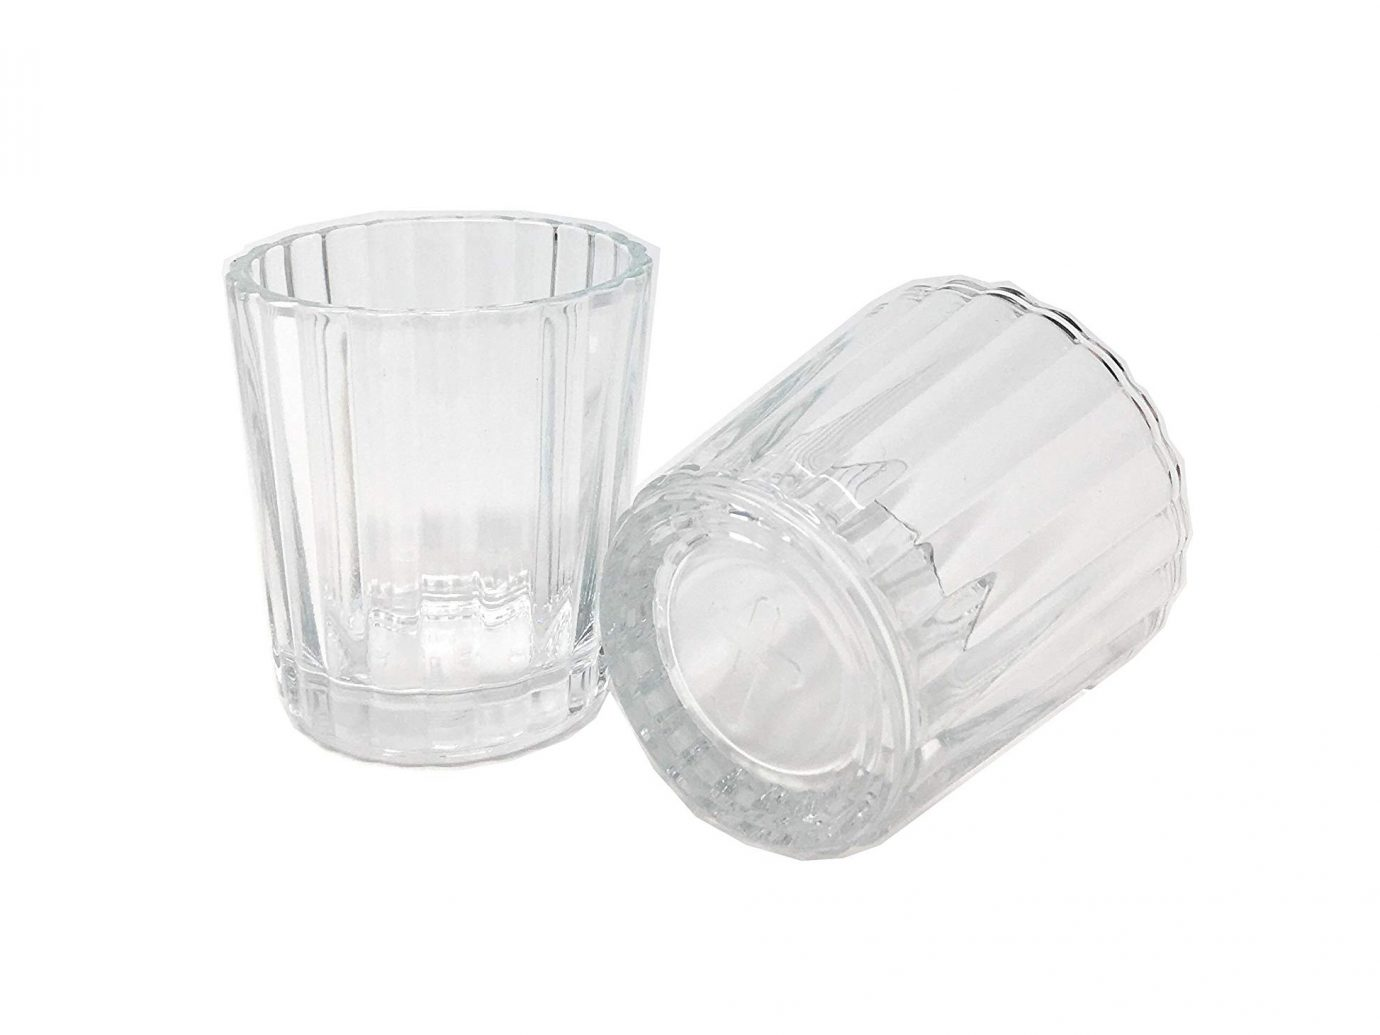 oaxaca mexcal glasses, votive candle holder, with a cross on the bottom